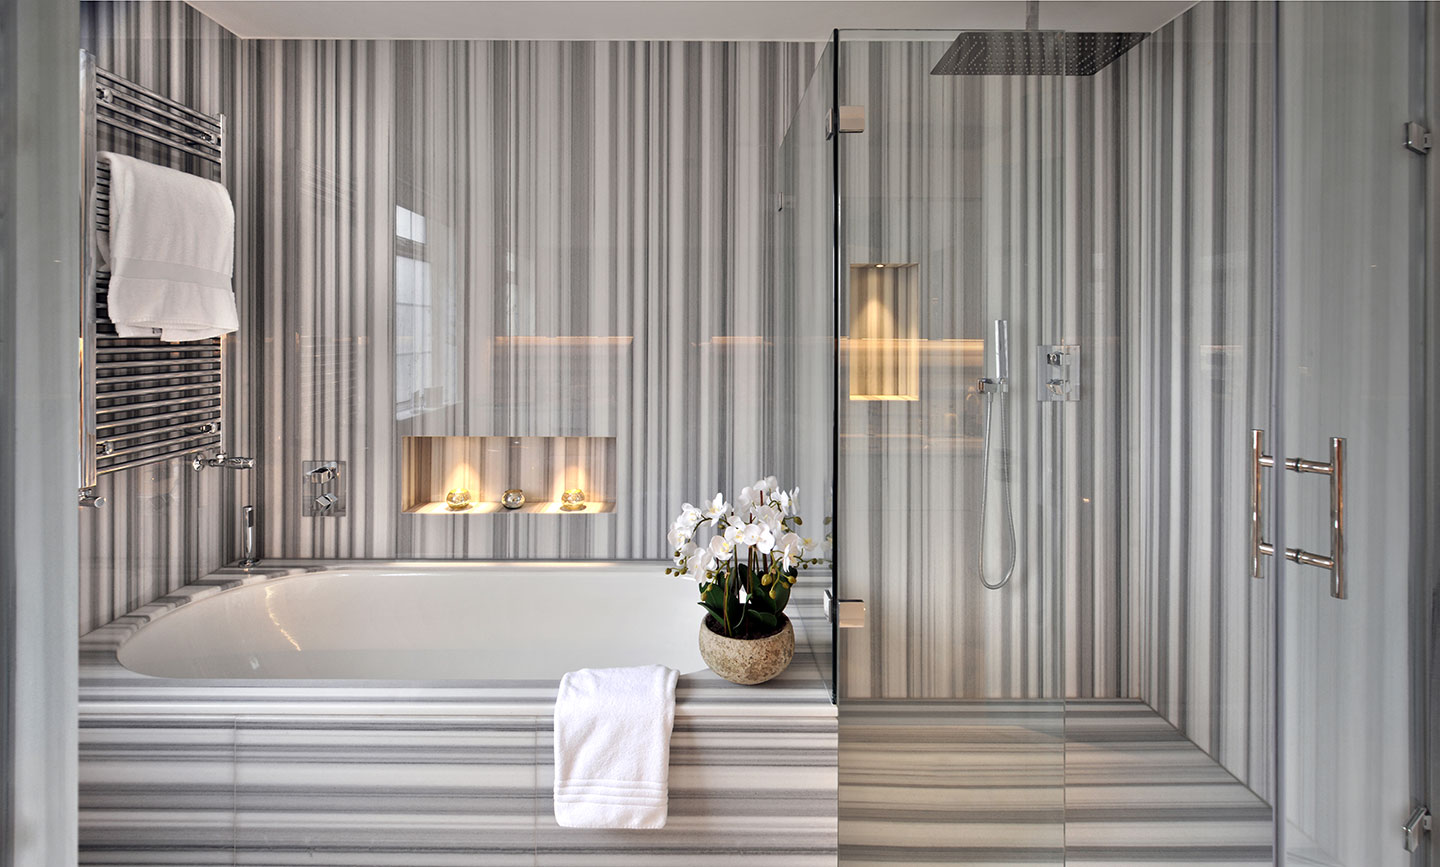 Beautifully lit bath in a beautifully designed interior